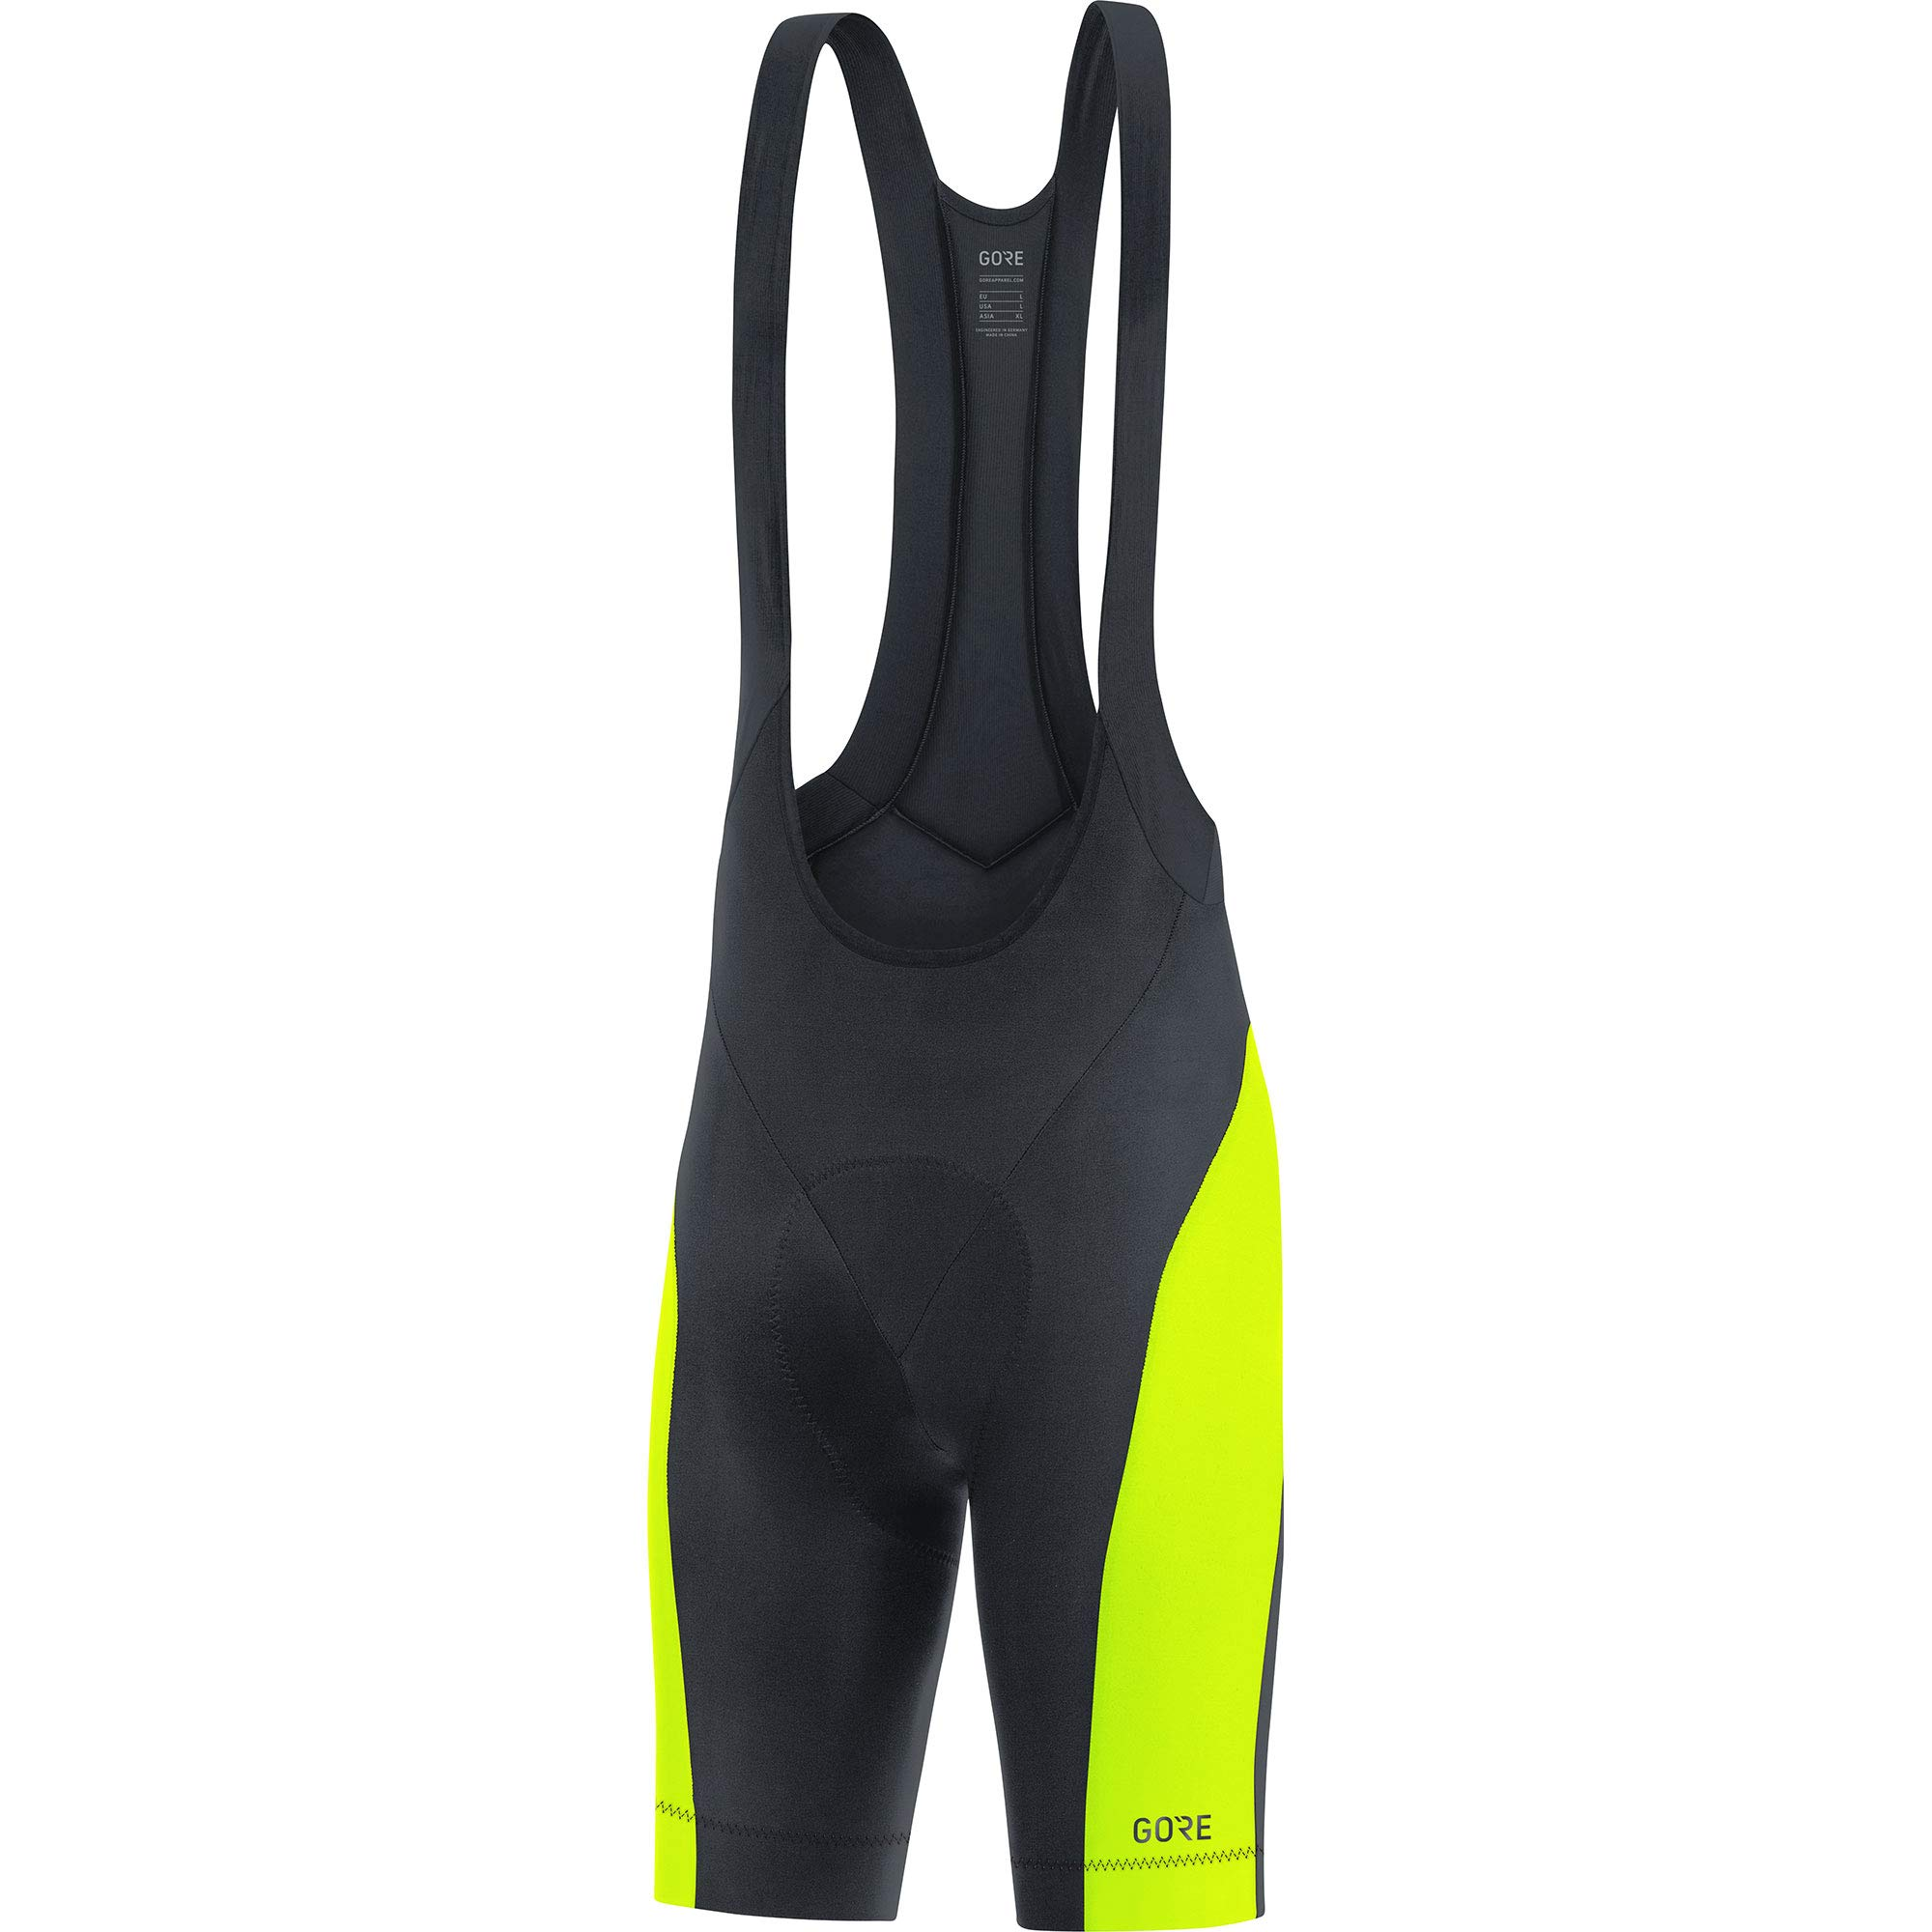 GORE WEAR C3 Men's Cycling Bib Shorts with Seat Insert, Size: M, Color: Black/Neon Yellow